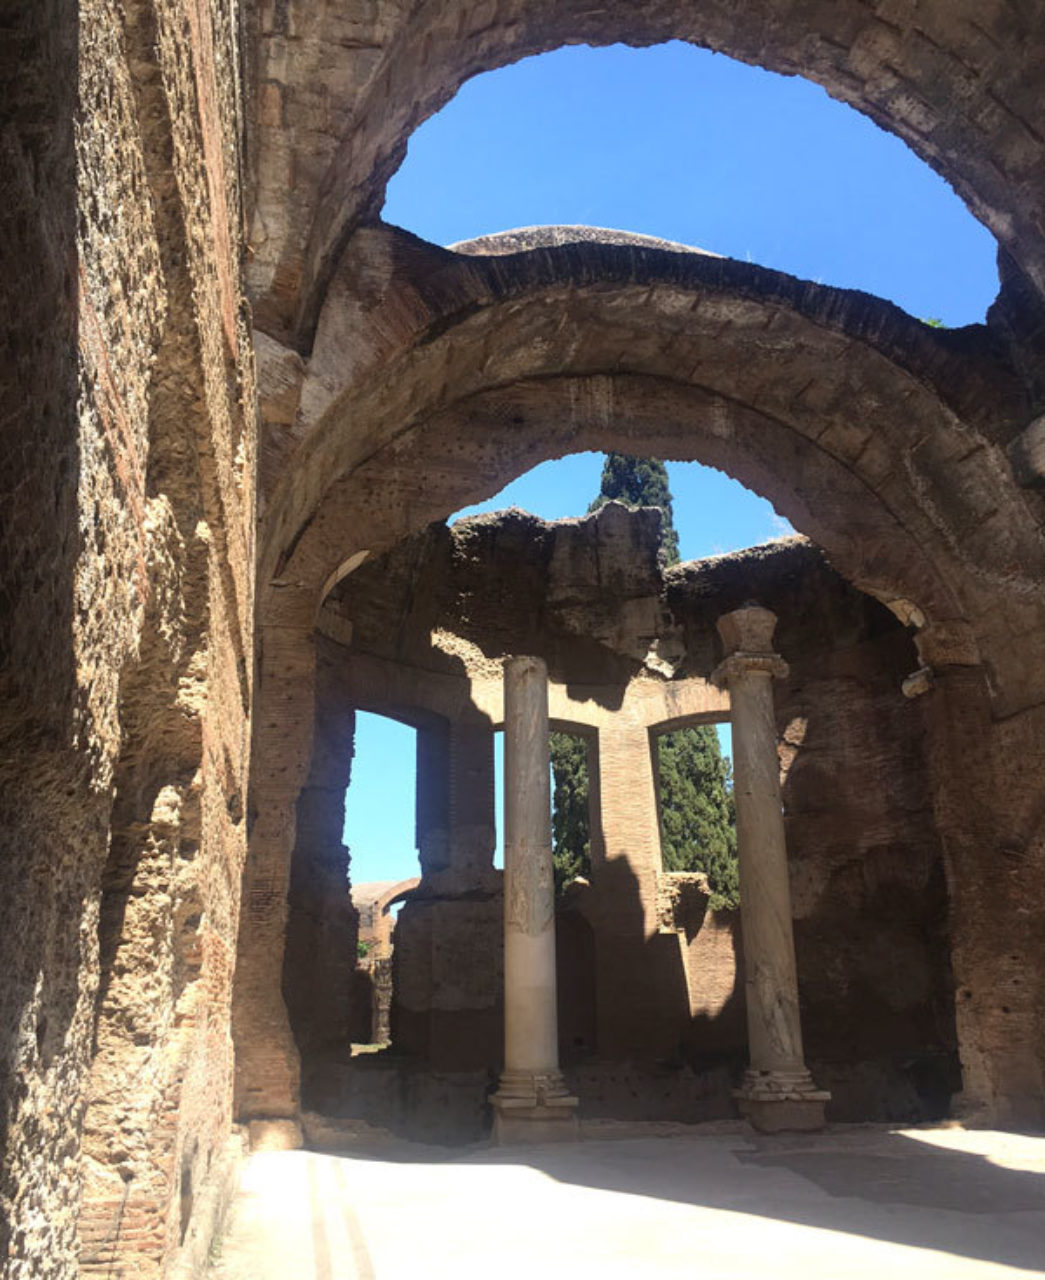 The Villa Adriana